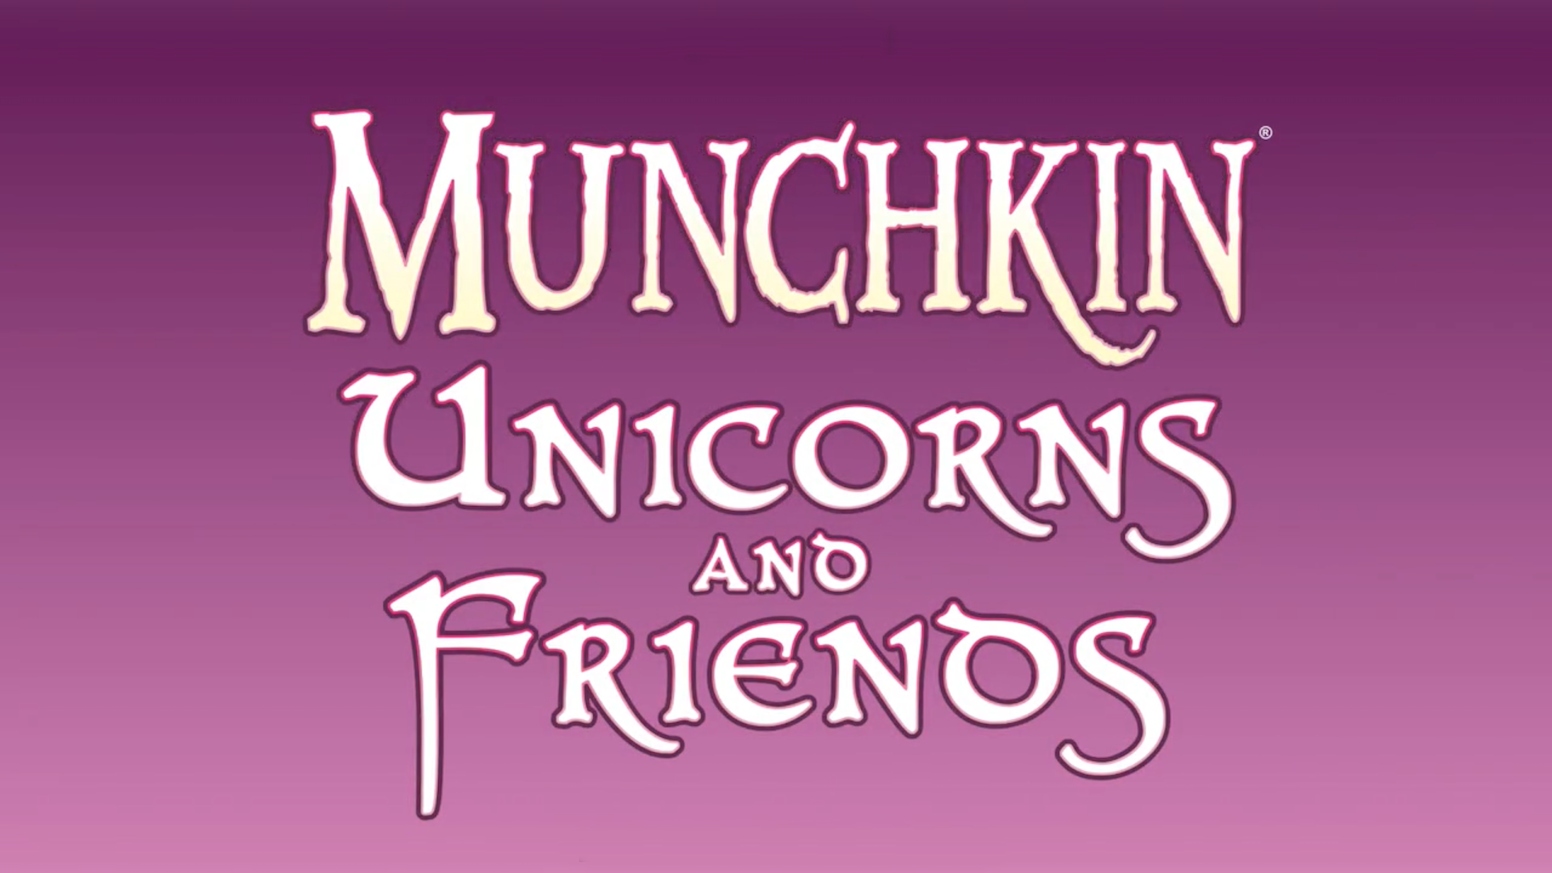 Munchkin Unicorns and Friends, a Munchkin mini-expansion loaded with unicorns, cows, and the undead!